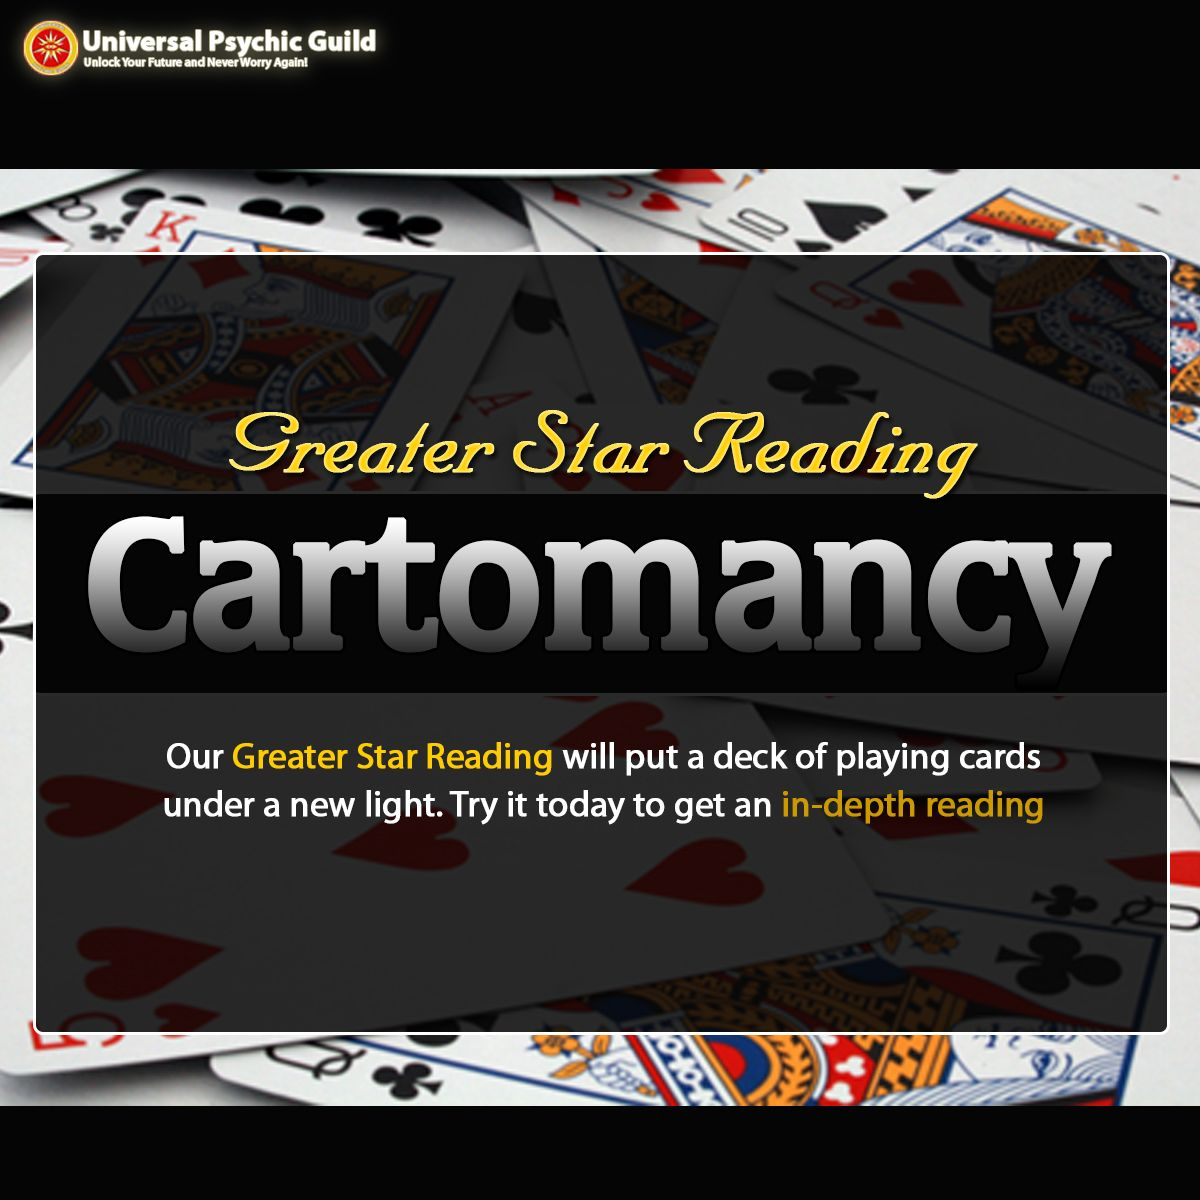 How are the cards stacked for you this year? Utilizing the old specialty of Cartomancy, our Greater Star Cartomancy Reading will give you a fortune figure! - #GreaterStar #CartomancyReading - http://bit.ly/1ONdzge